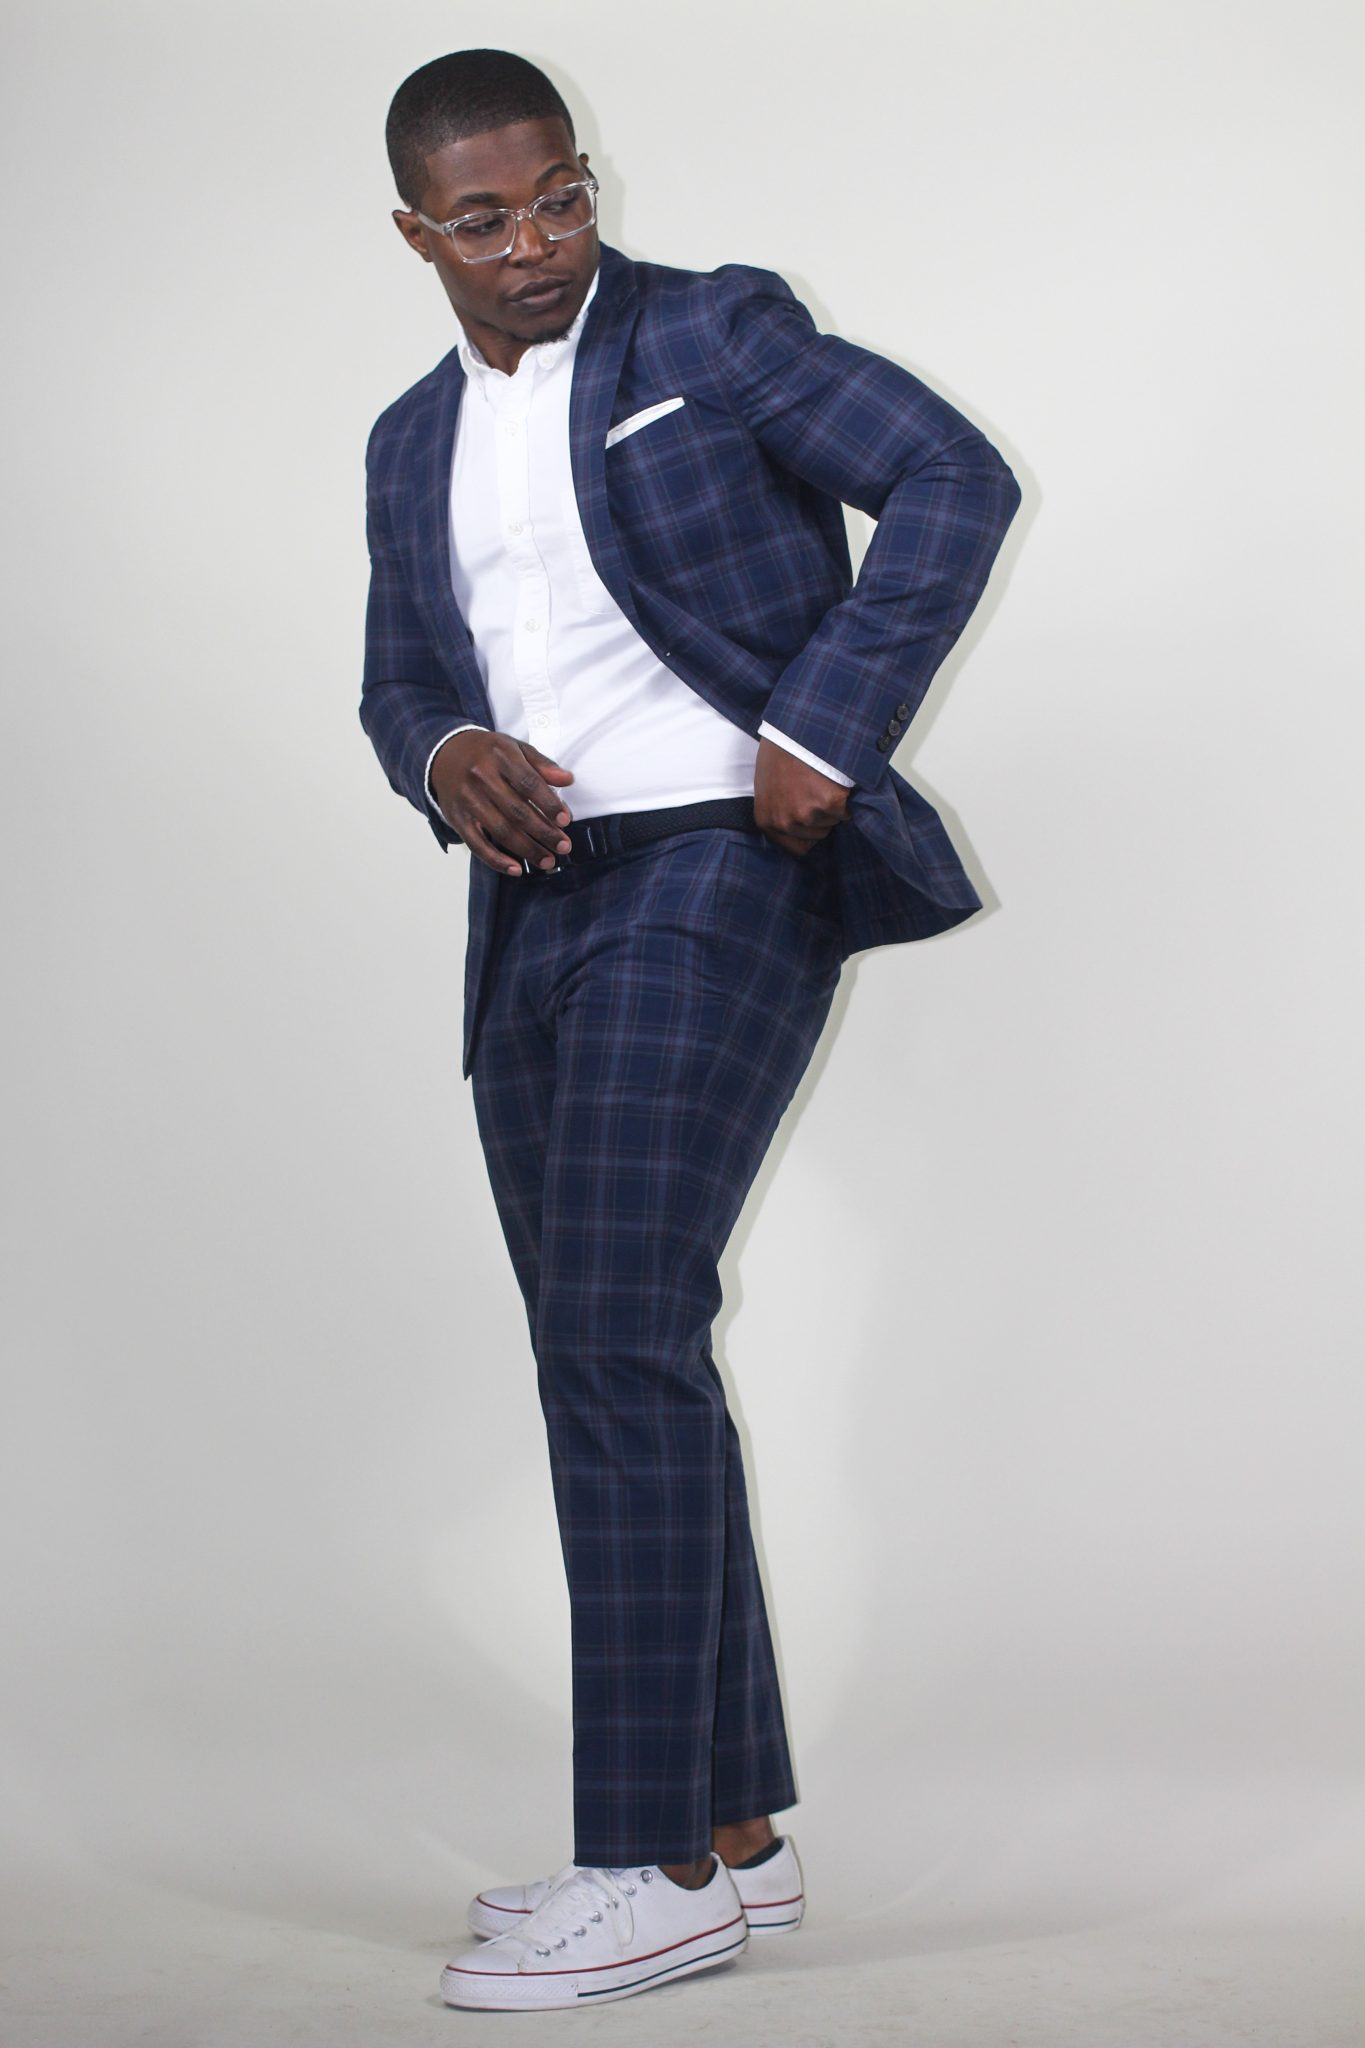 dapper-advisor-black-man-wearing-uniqlo-plaid suit-white-sneakers-clear-glasses-5